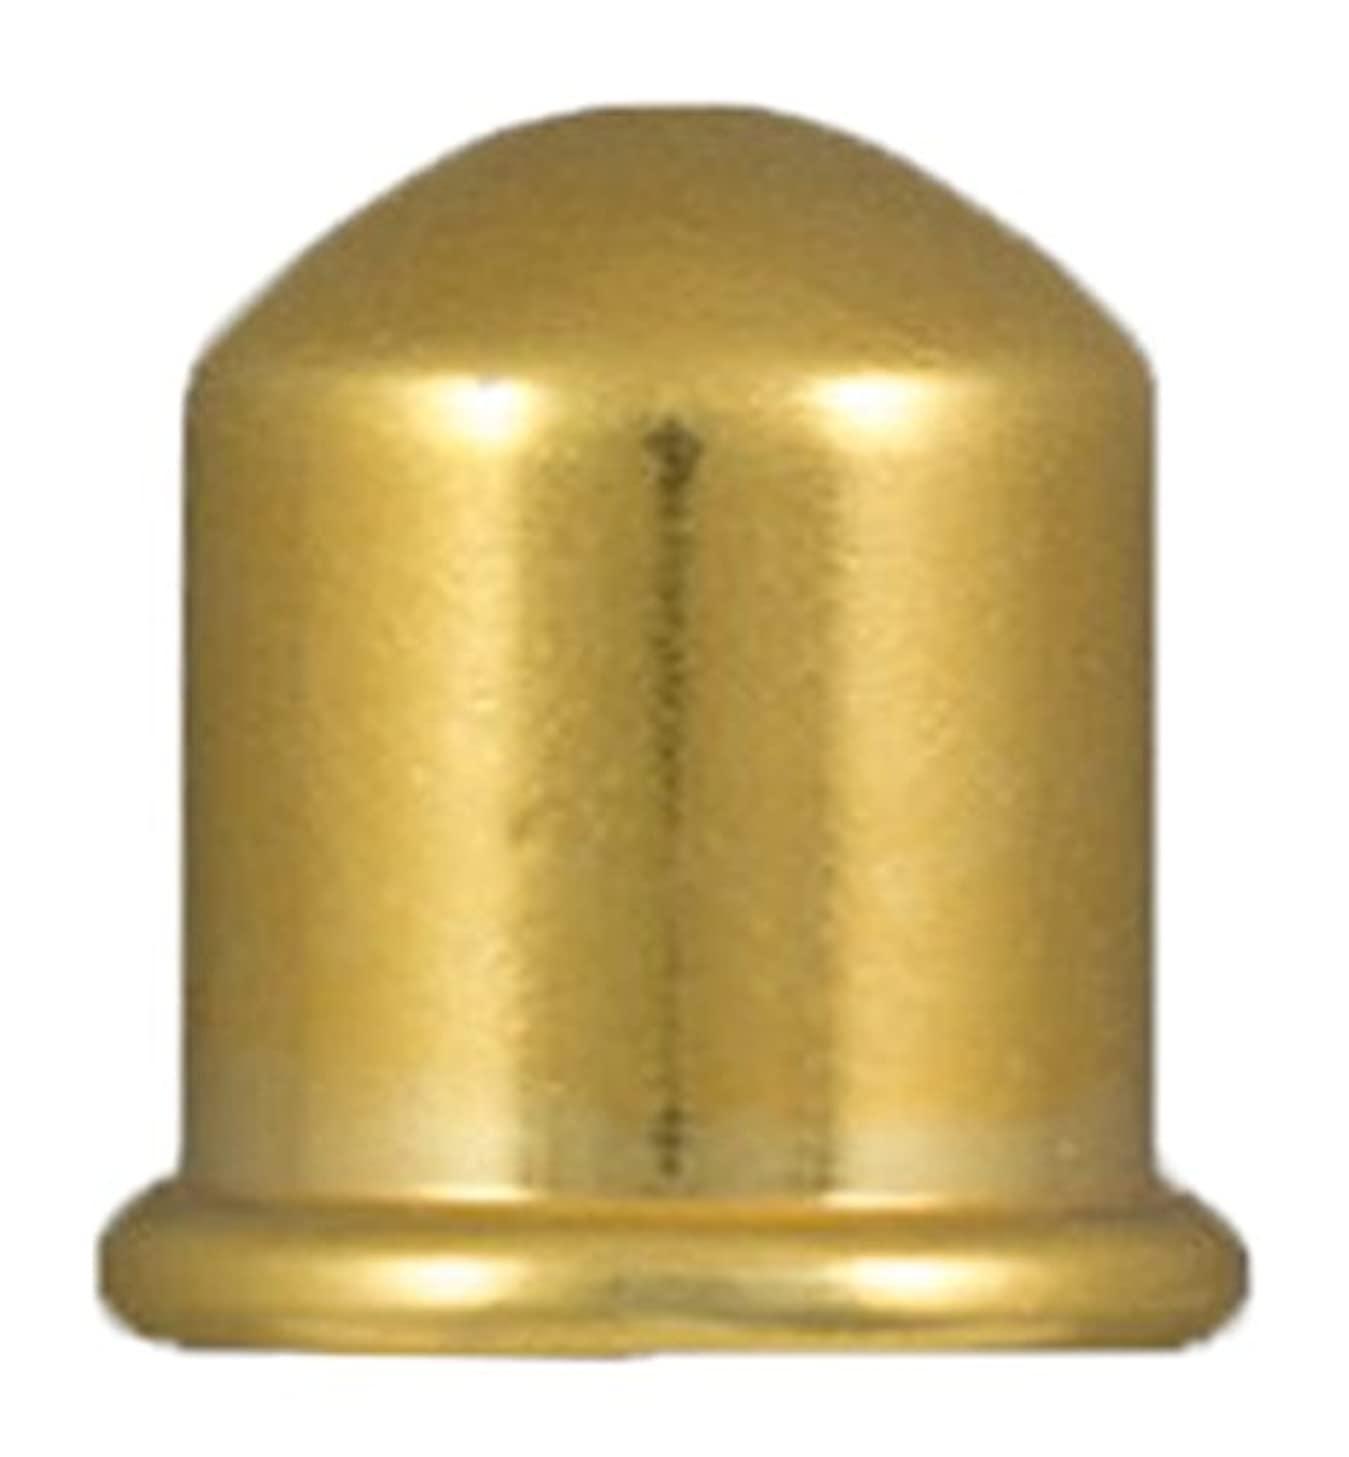 TierraCast Cord End Cupola Beads, 8mm Inner Diameter/12mm Bright Gold,